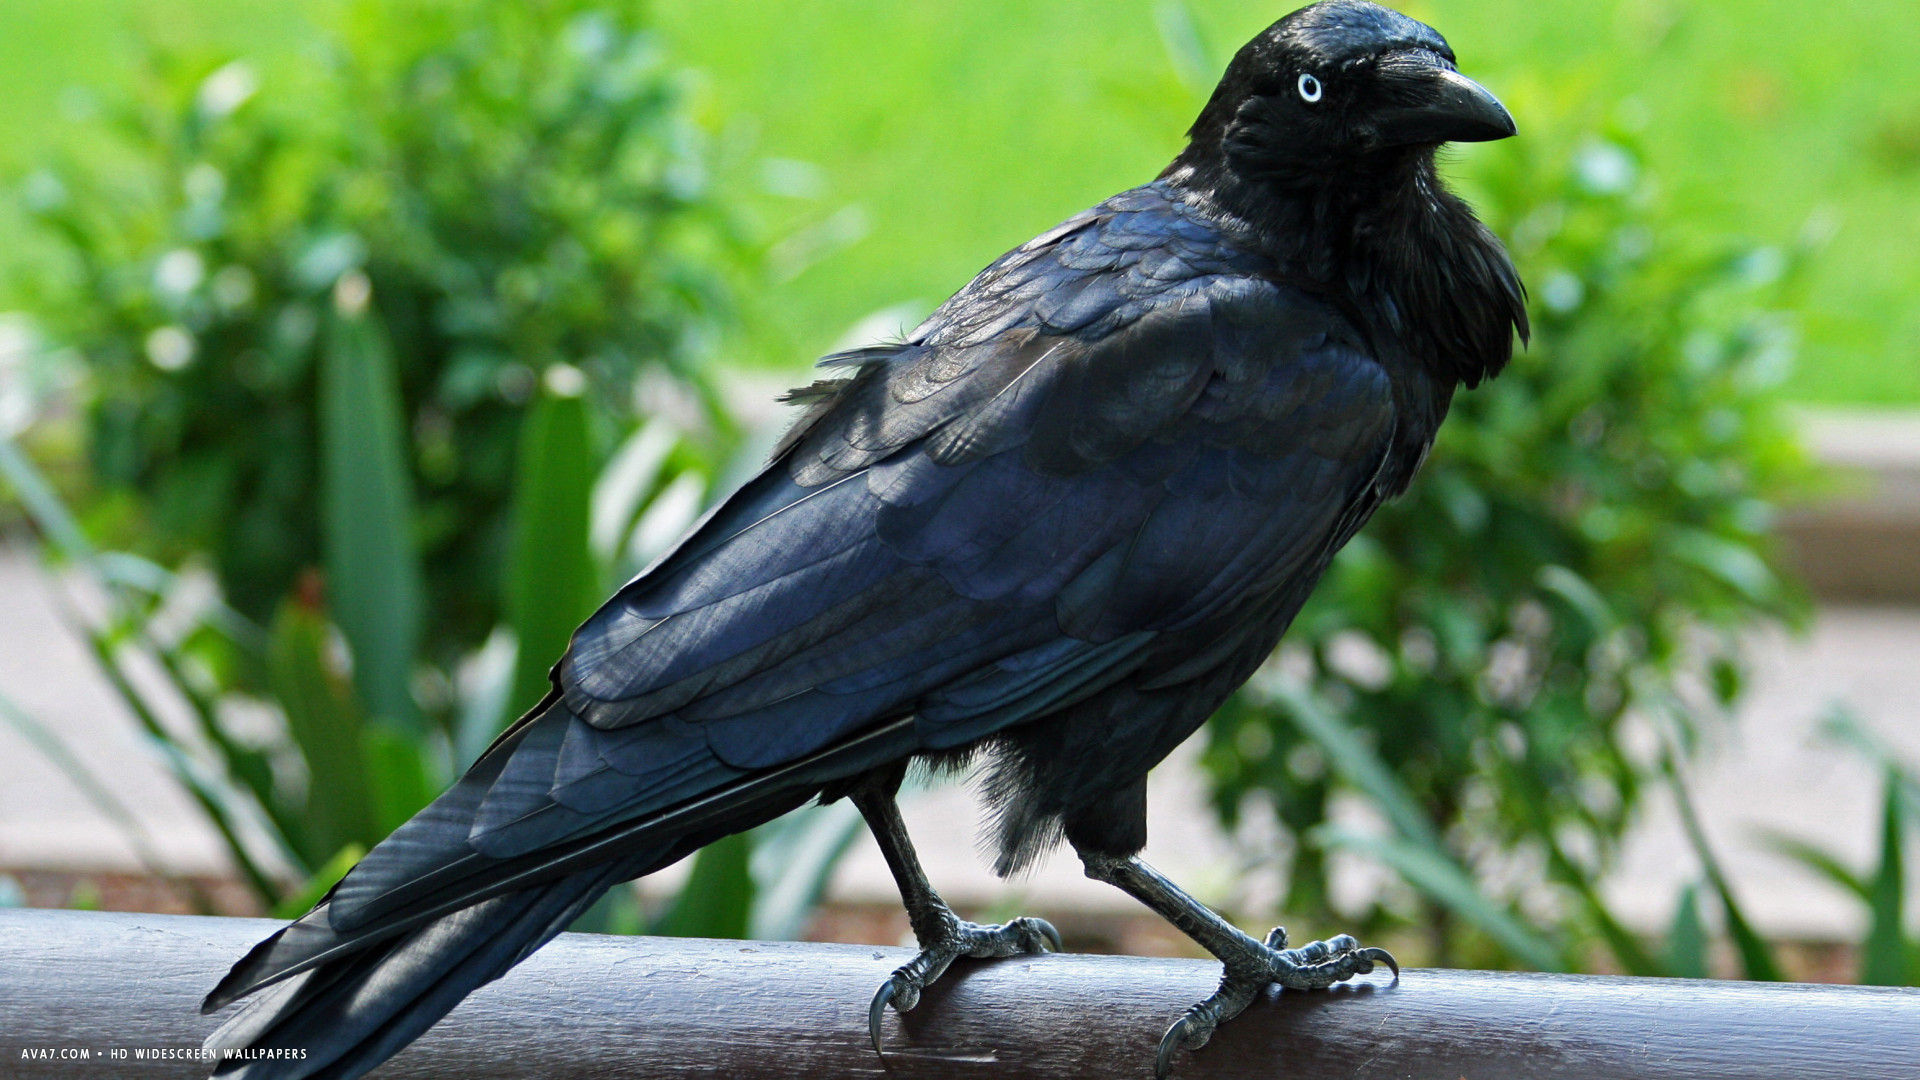 raven australian black bird hd widescreen wallpaper birds 1920x1080